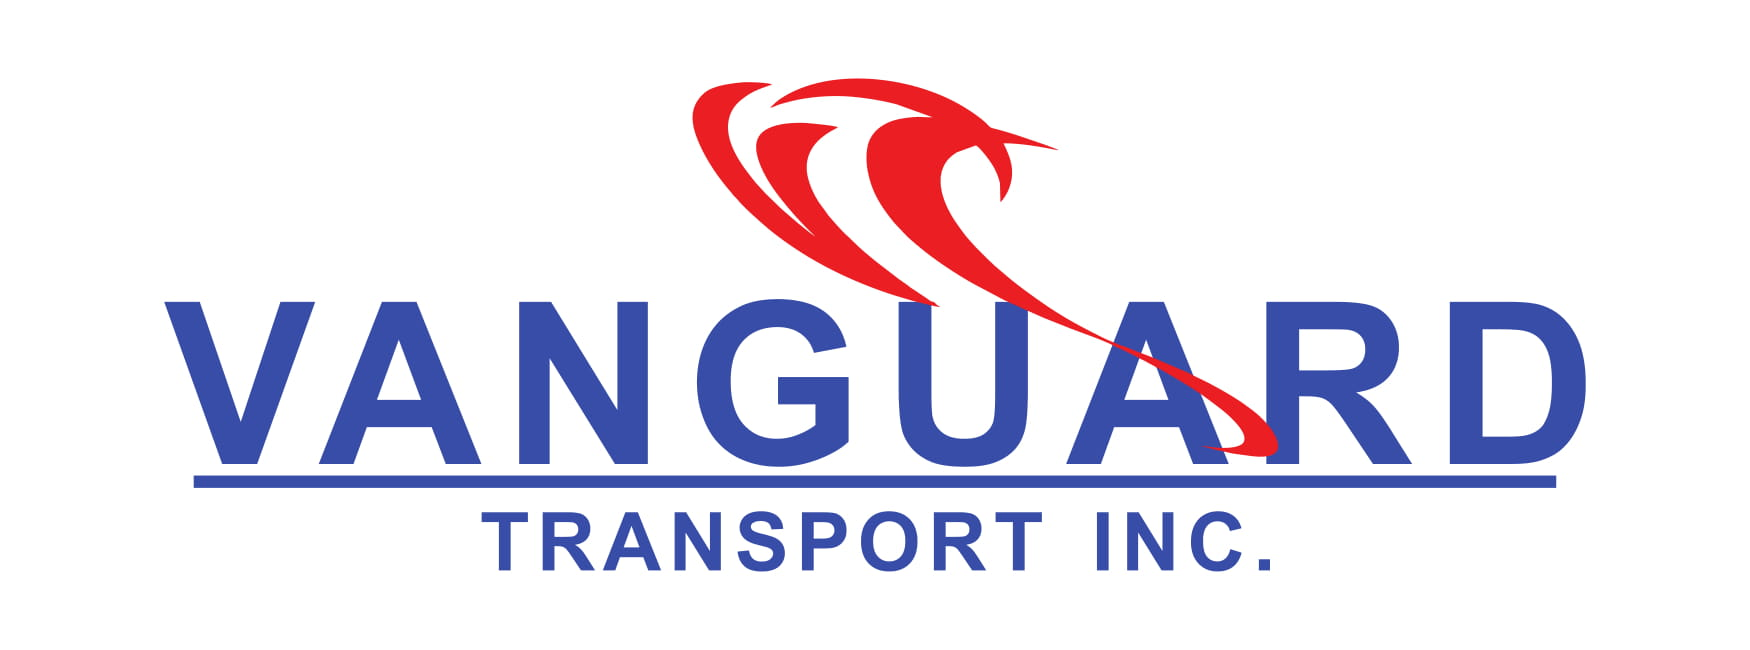 Vanguard Transportation